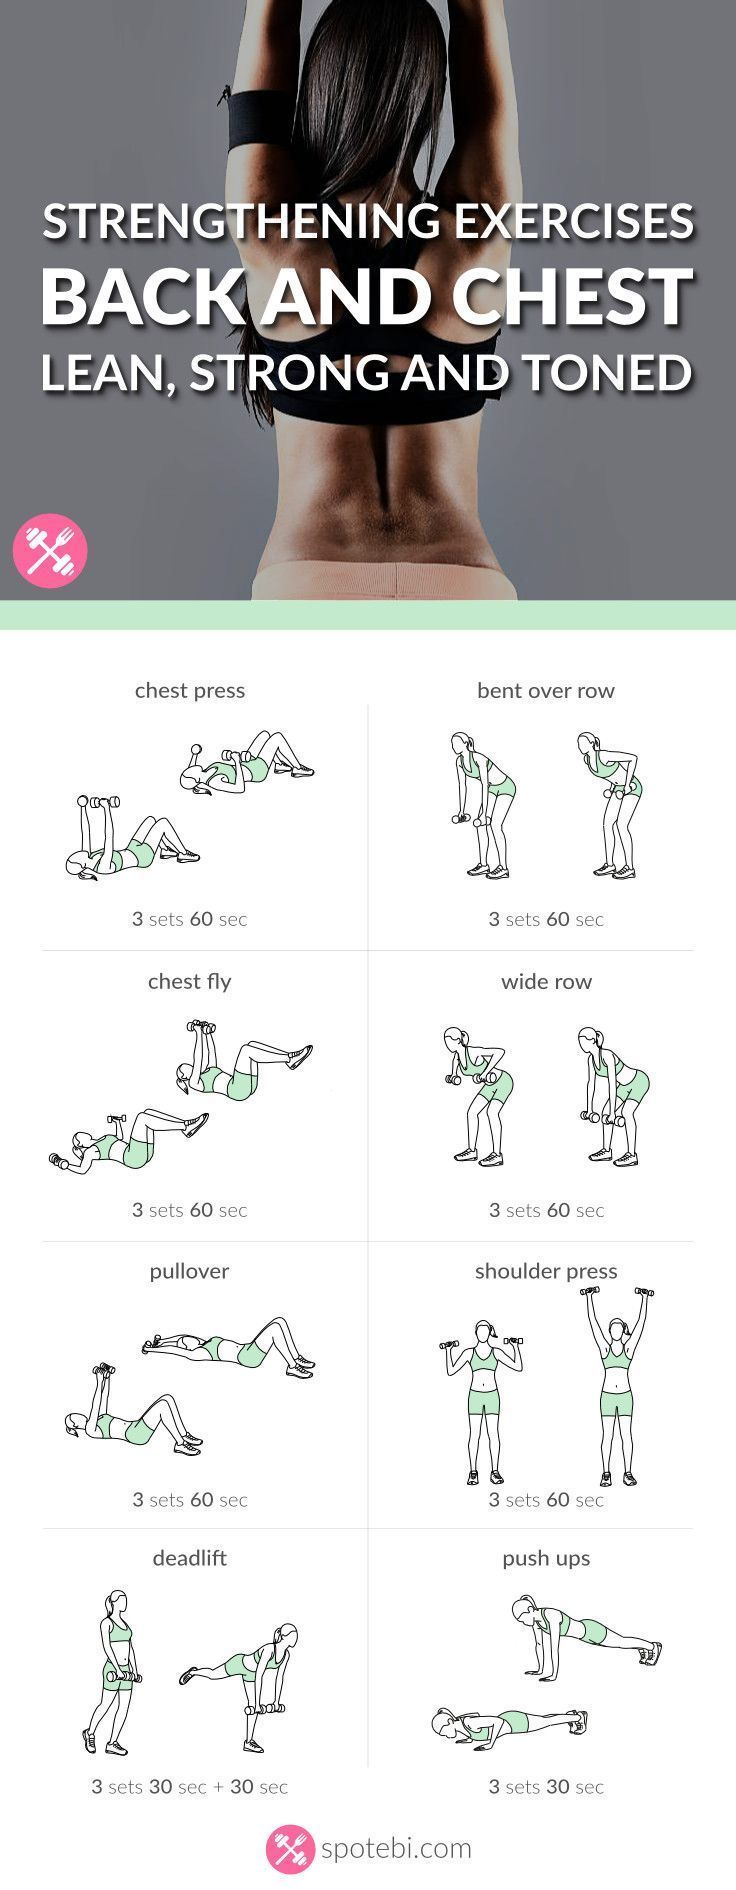 Lift your breasts naturally! Try these chest and back strengthening exercises for women to help you tone, firm and lift your chest and improve your posture. http://www.spotebi.com/workout-routines/chest-back-strengthening-exercises-lean-strong-toned/